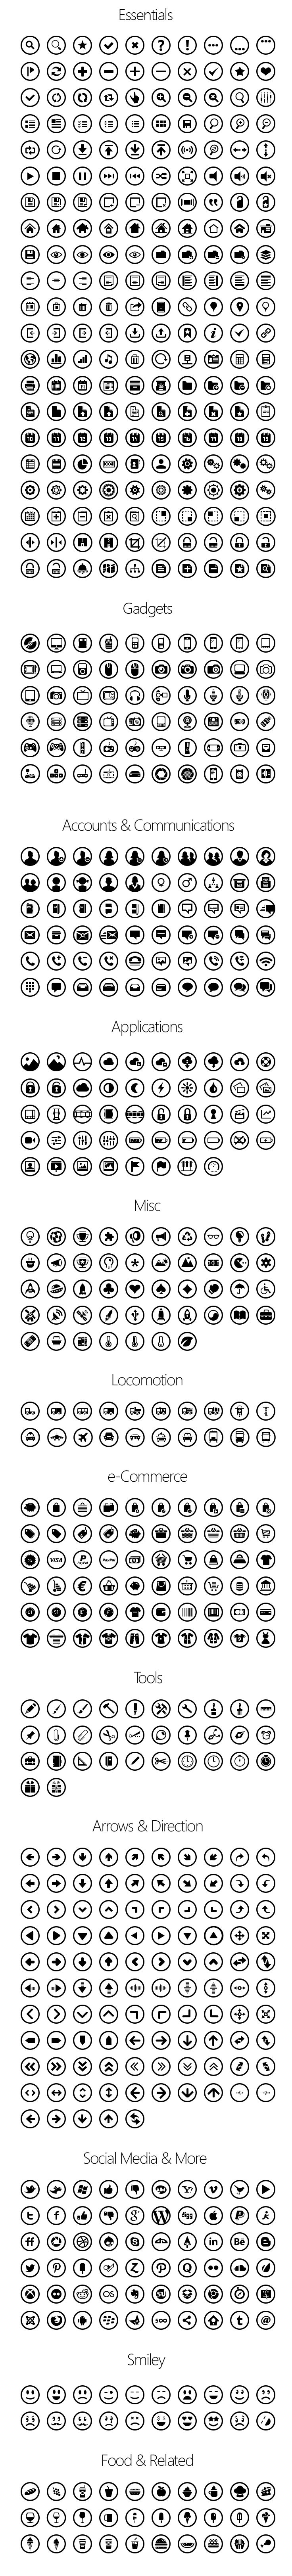 MeTRIcons pro - Icons for Windows 8 and Windows Phones | Icon ...